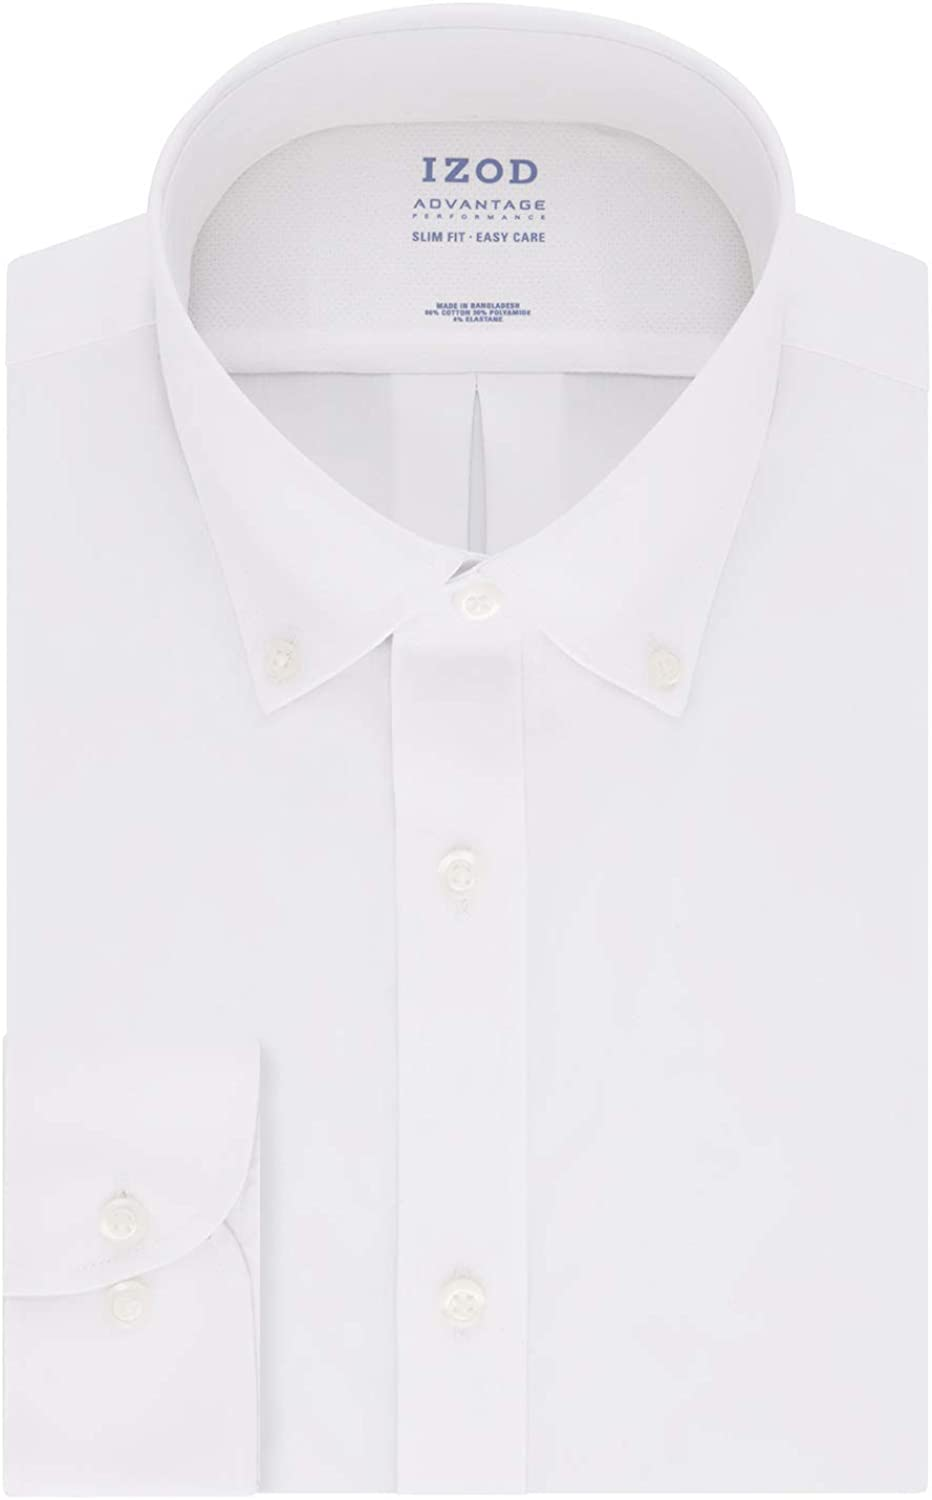 IZOD Men's Dress Shirt Slim Fit Stretch Cool FX Cooling Collar Solid